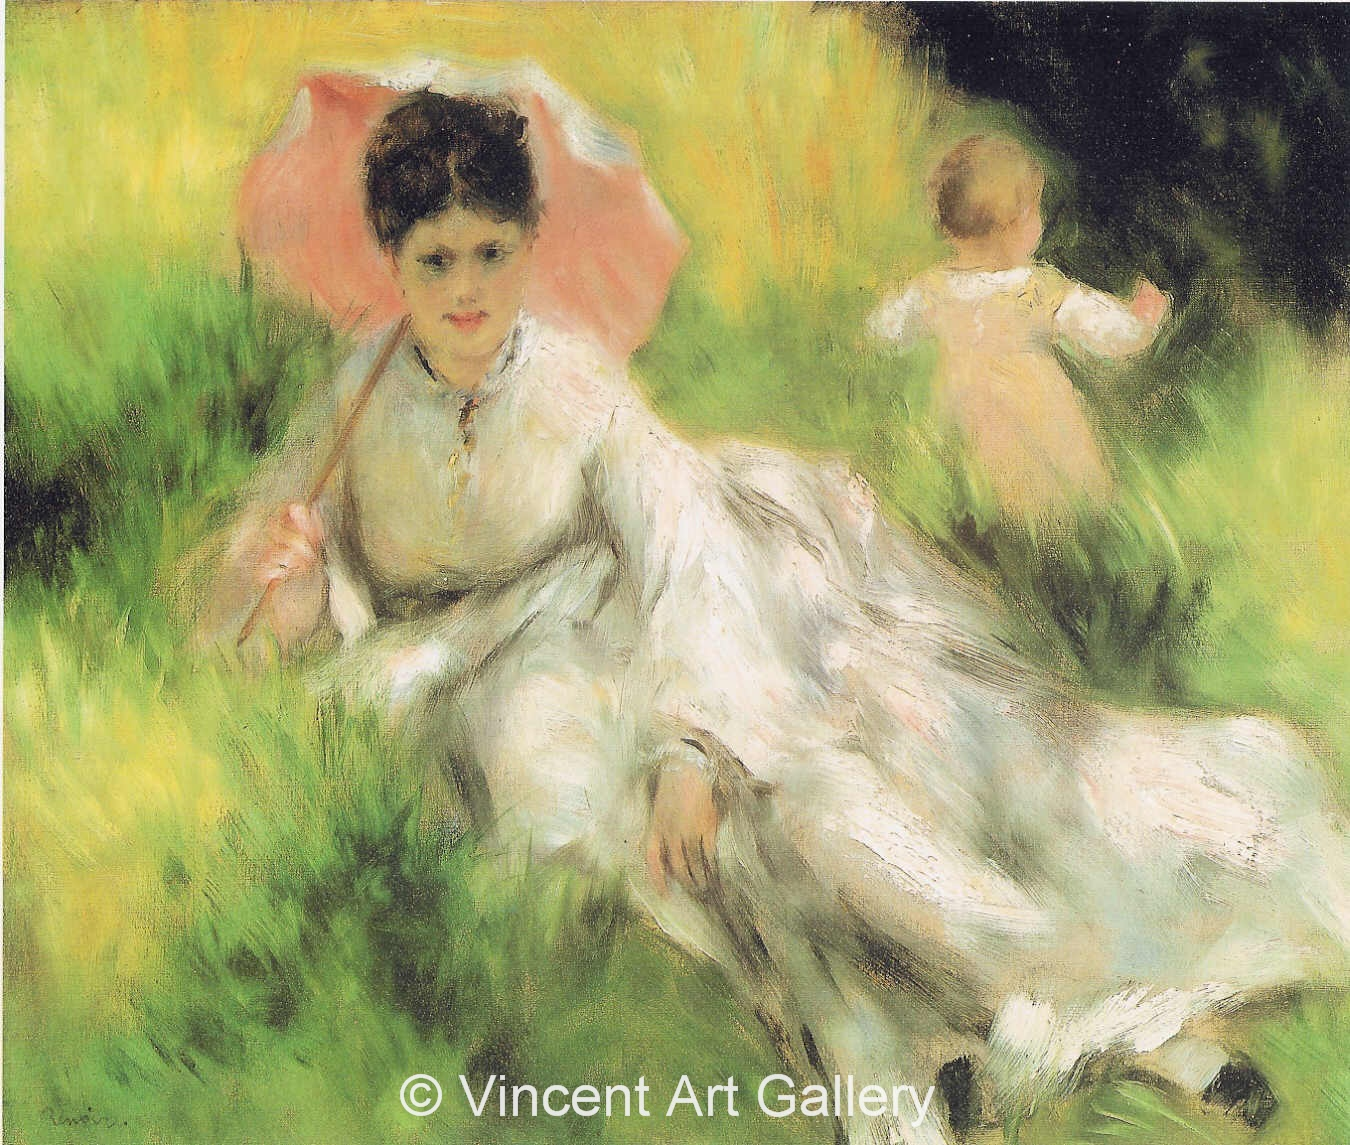 A3027, RENOIR, Woman with a Parasol and a Child in the Meadow, Camille Monet